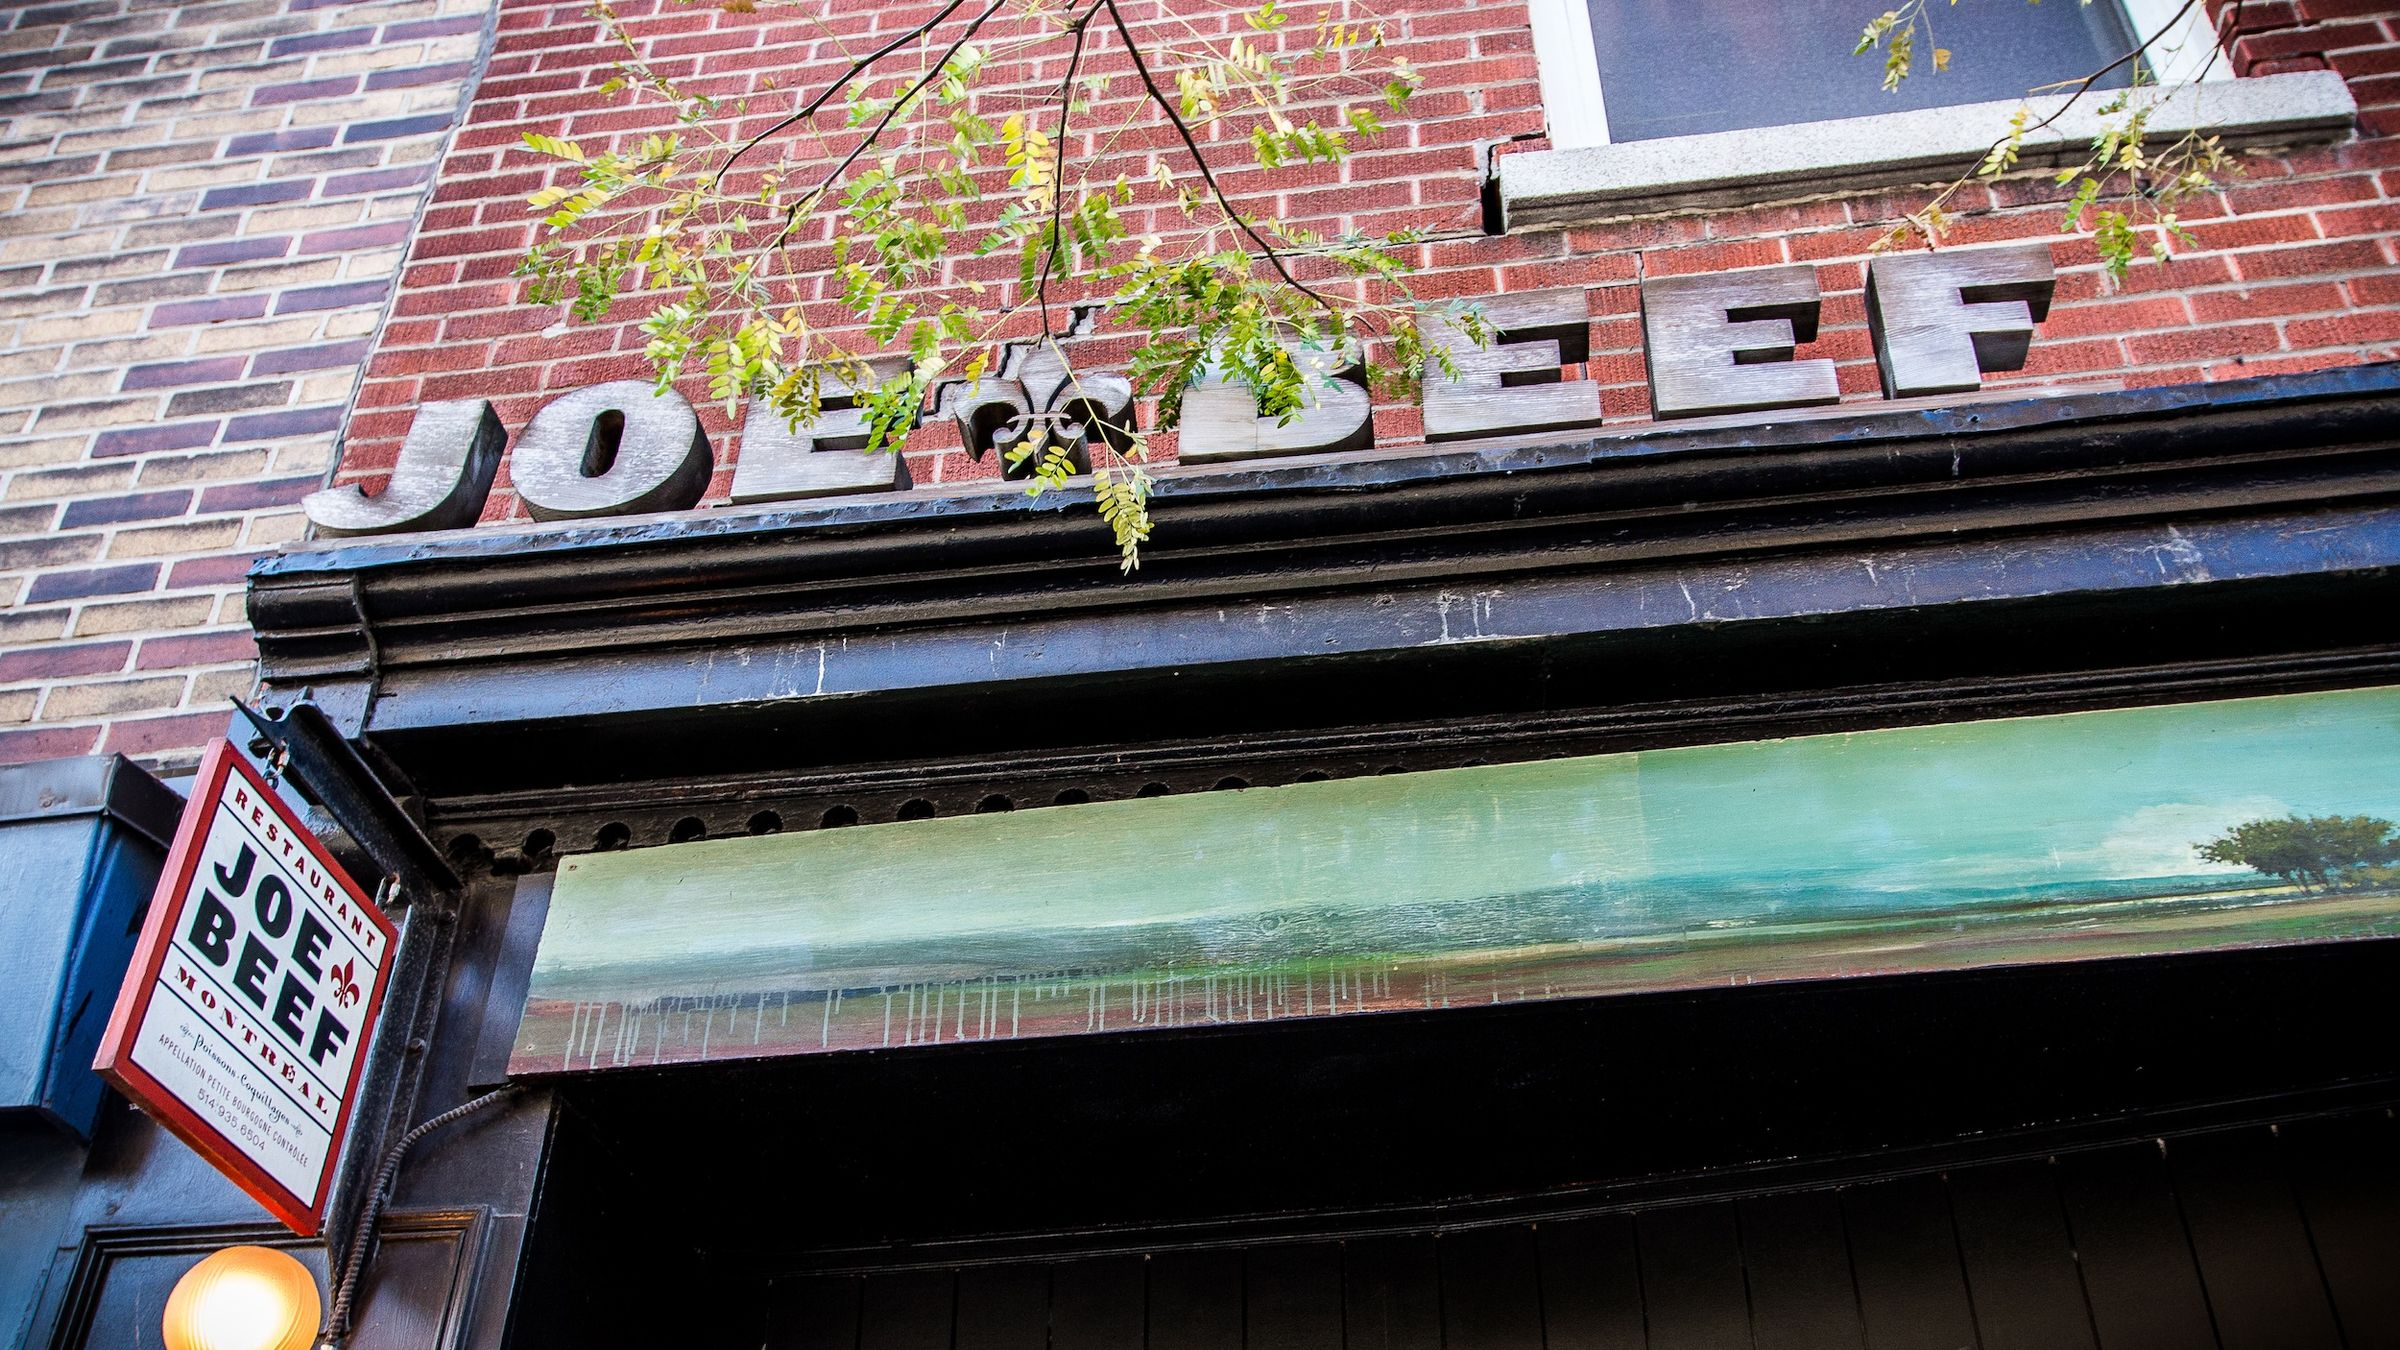 Joe Beef Restaurateurs Say They've Changed, but Bigger Strides Are Needed